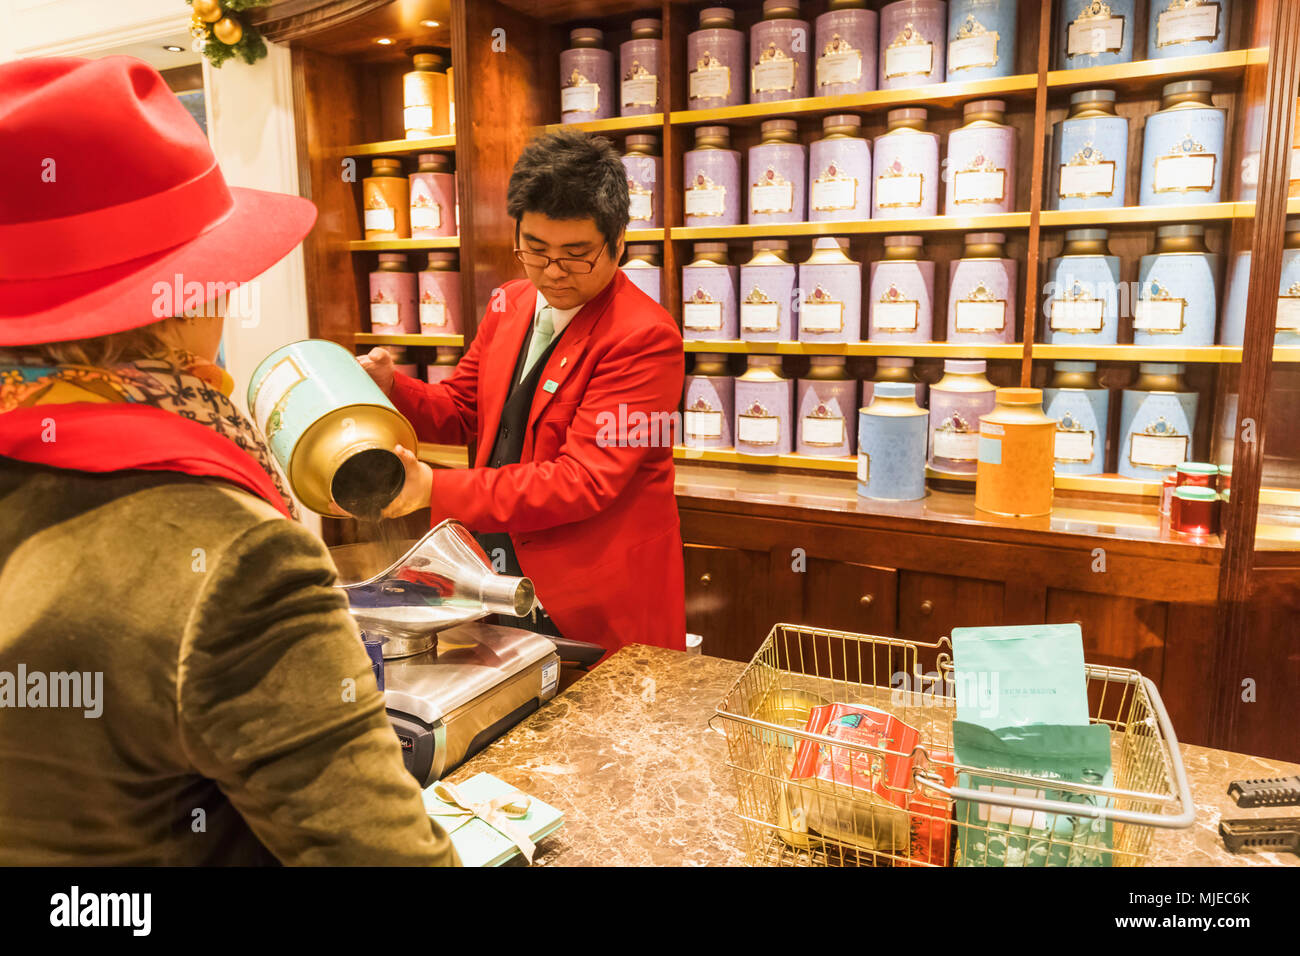 England, London, Piccadilly, Fortnum & Mason Store, Sales Assistant Weighing Tea - Stock Image